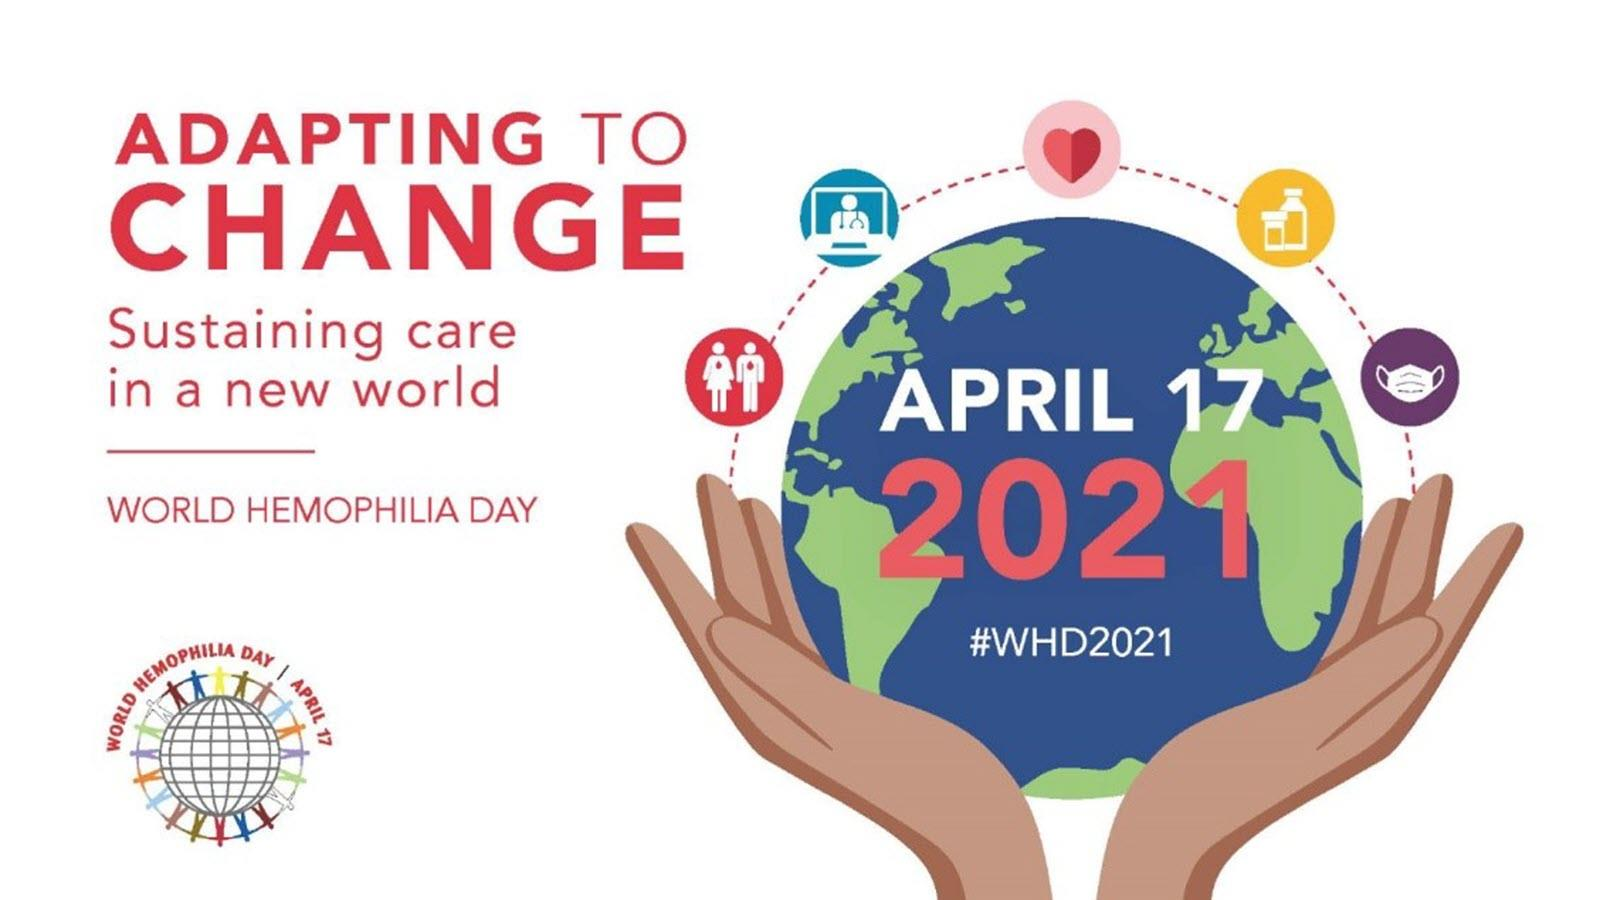 World Hemophilia Day image featuring a globe held by two hands